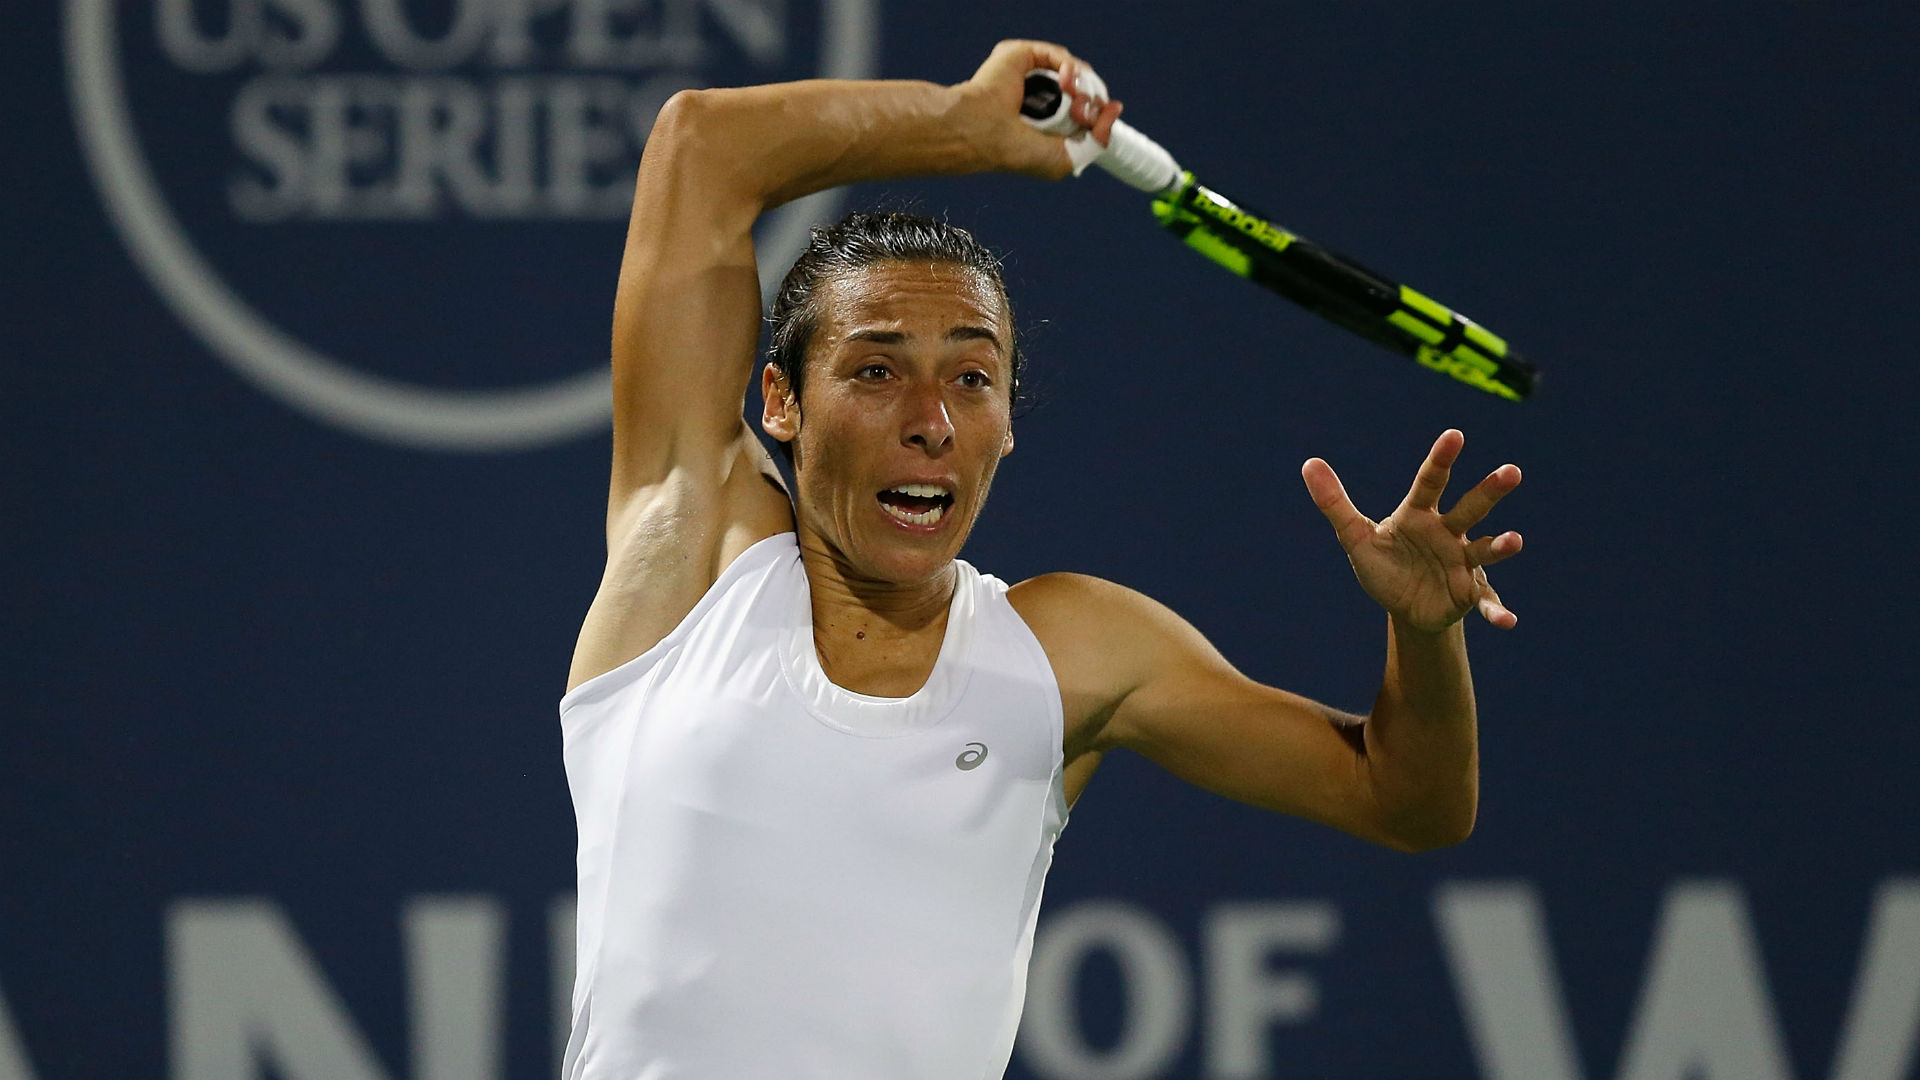 Schiavone 'back in action' following cancer diagnosis